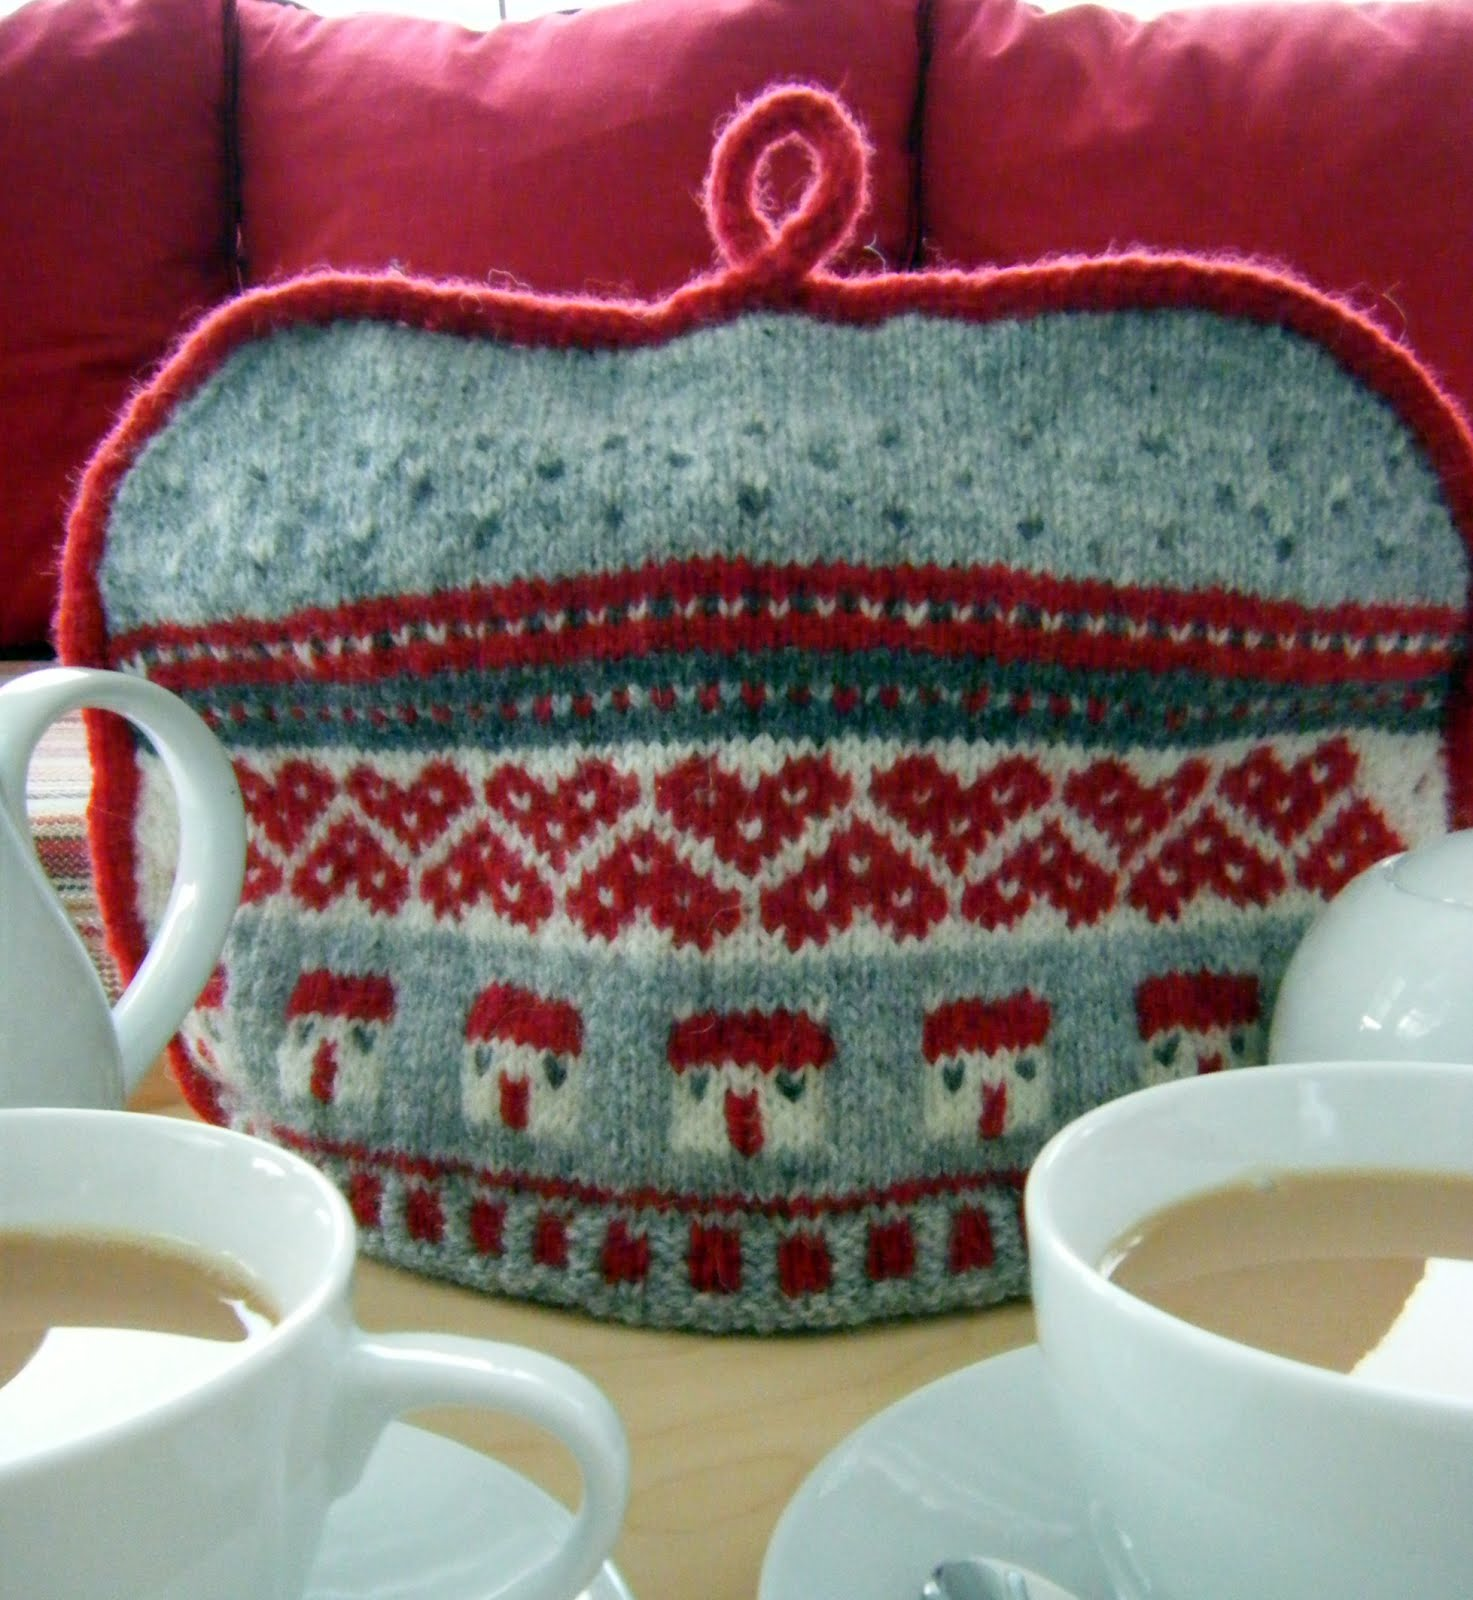 Fair Isle Knit Tea Cozy by Julia at Hand Knitted Things Blog